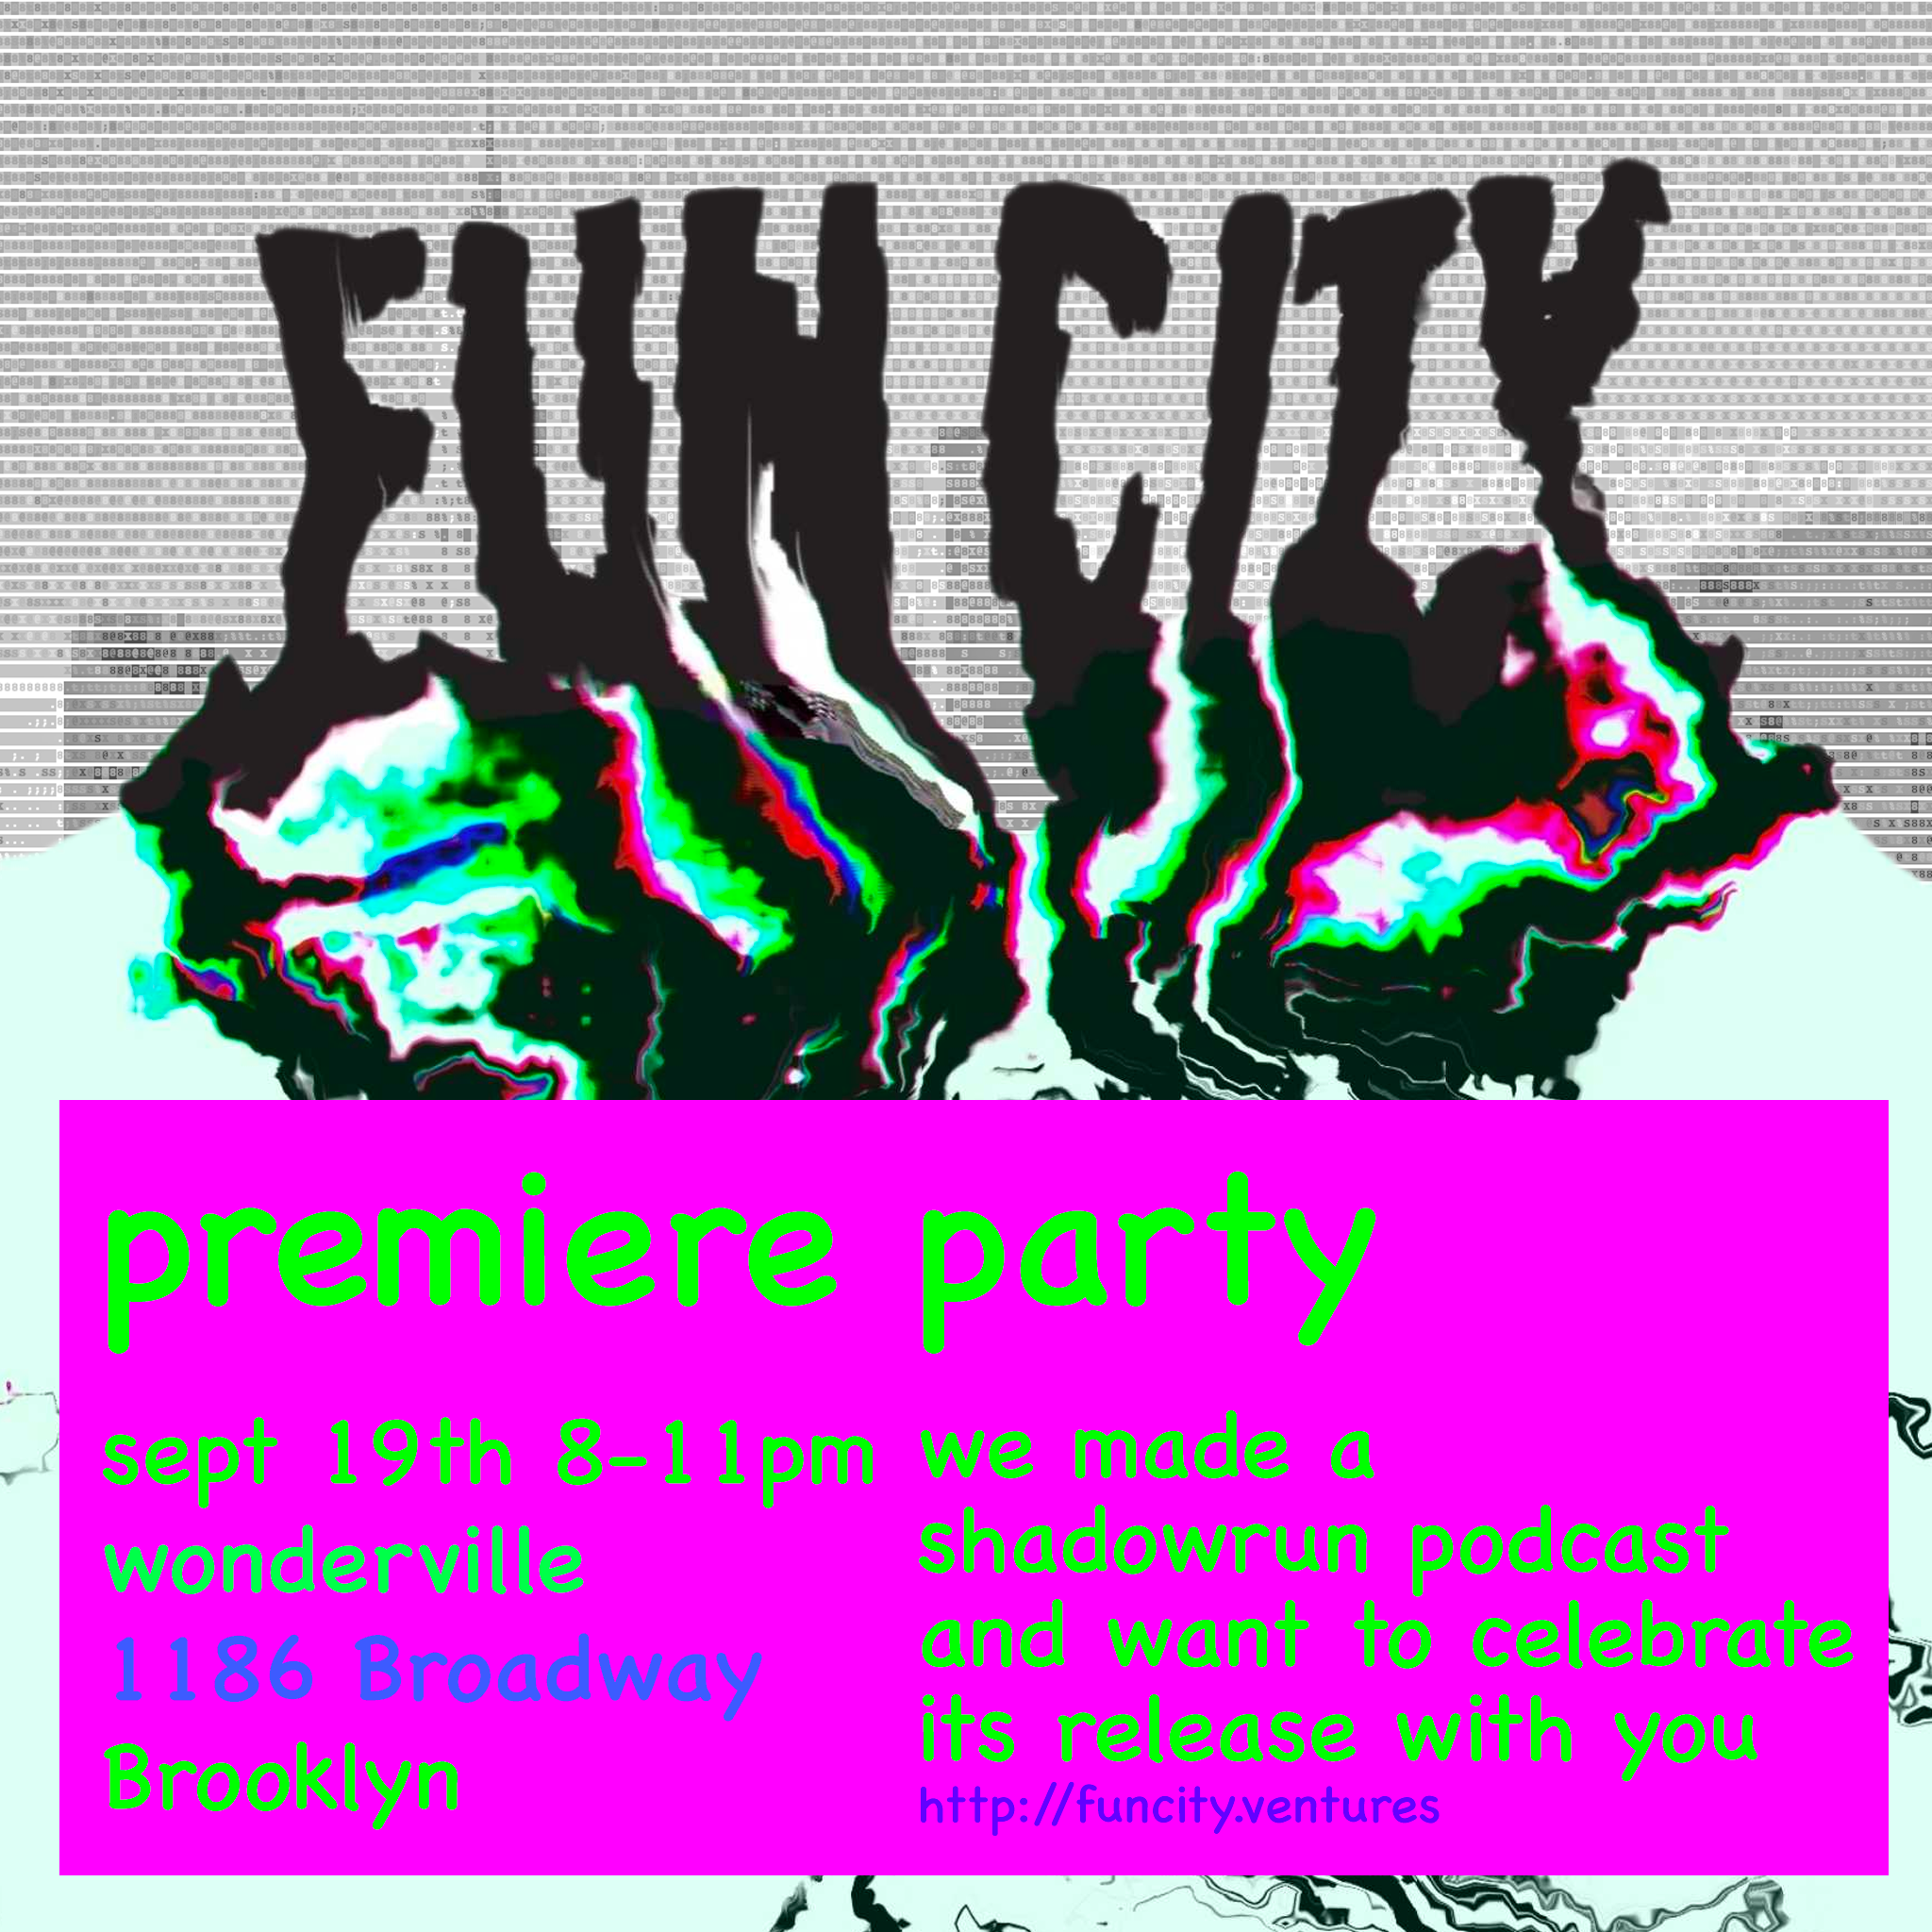 RSVP:  https://withfriends.co/event/2539961/fun_city_premiere_party/